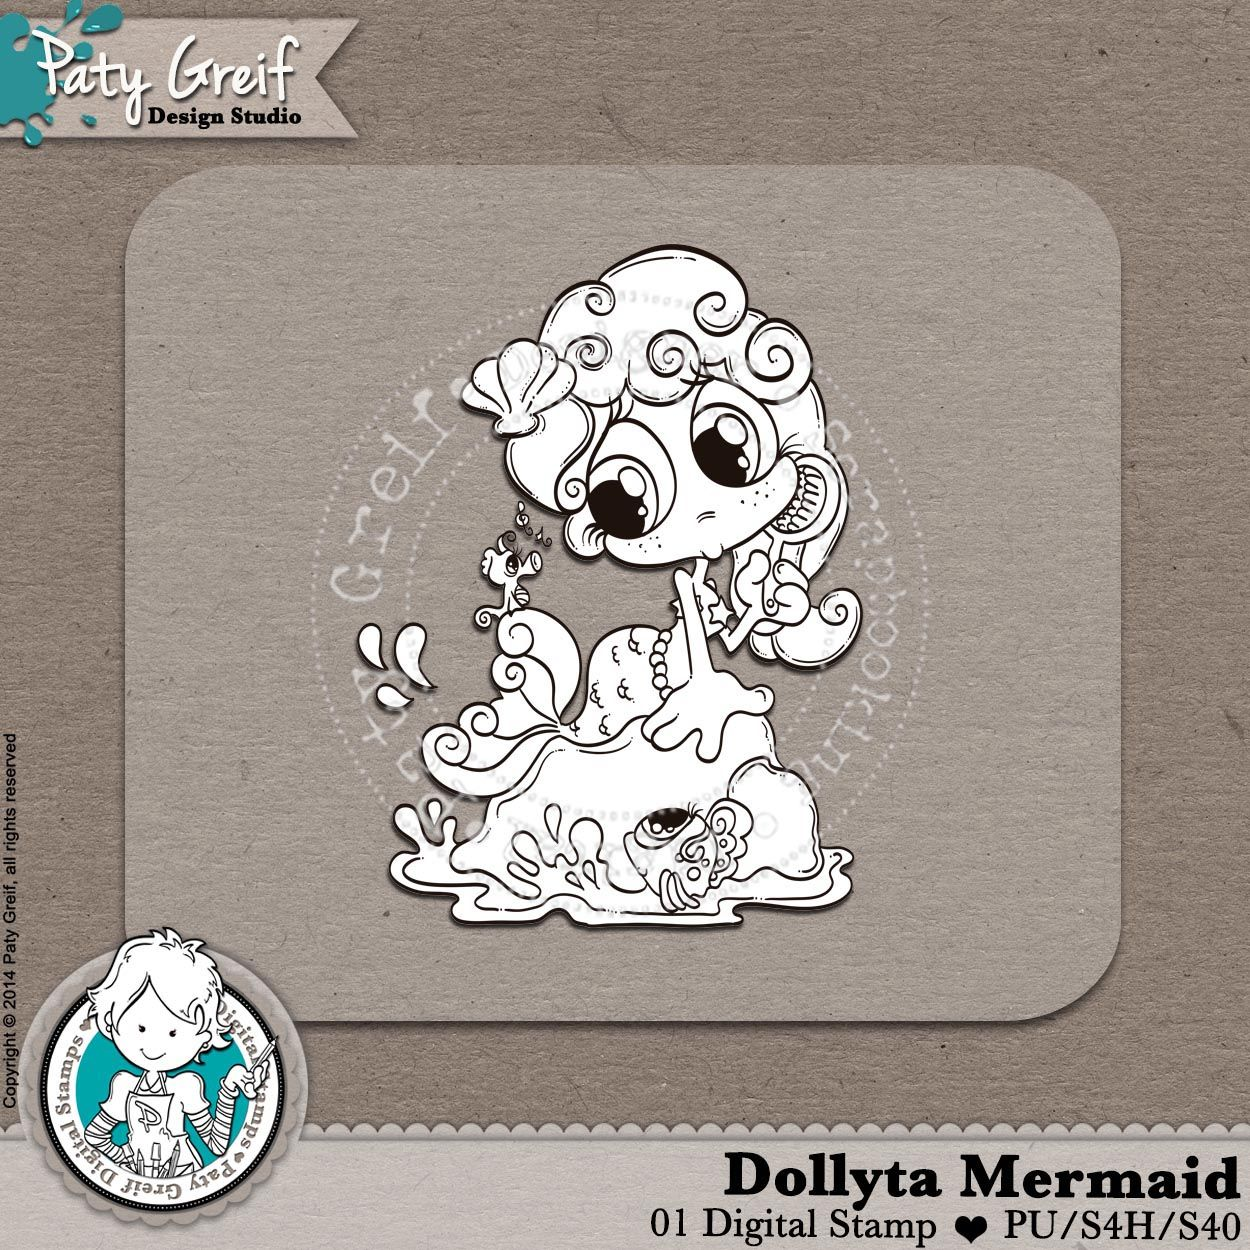 """Dollytas Collection """"Dolytas Mermaid"""" Exclusive Designs by Paty Greif. Pack with 1 digi stamp"""